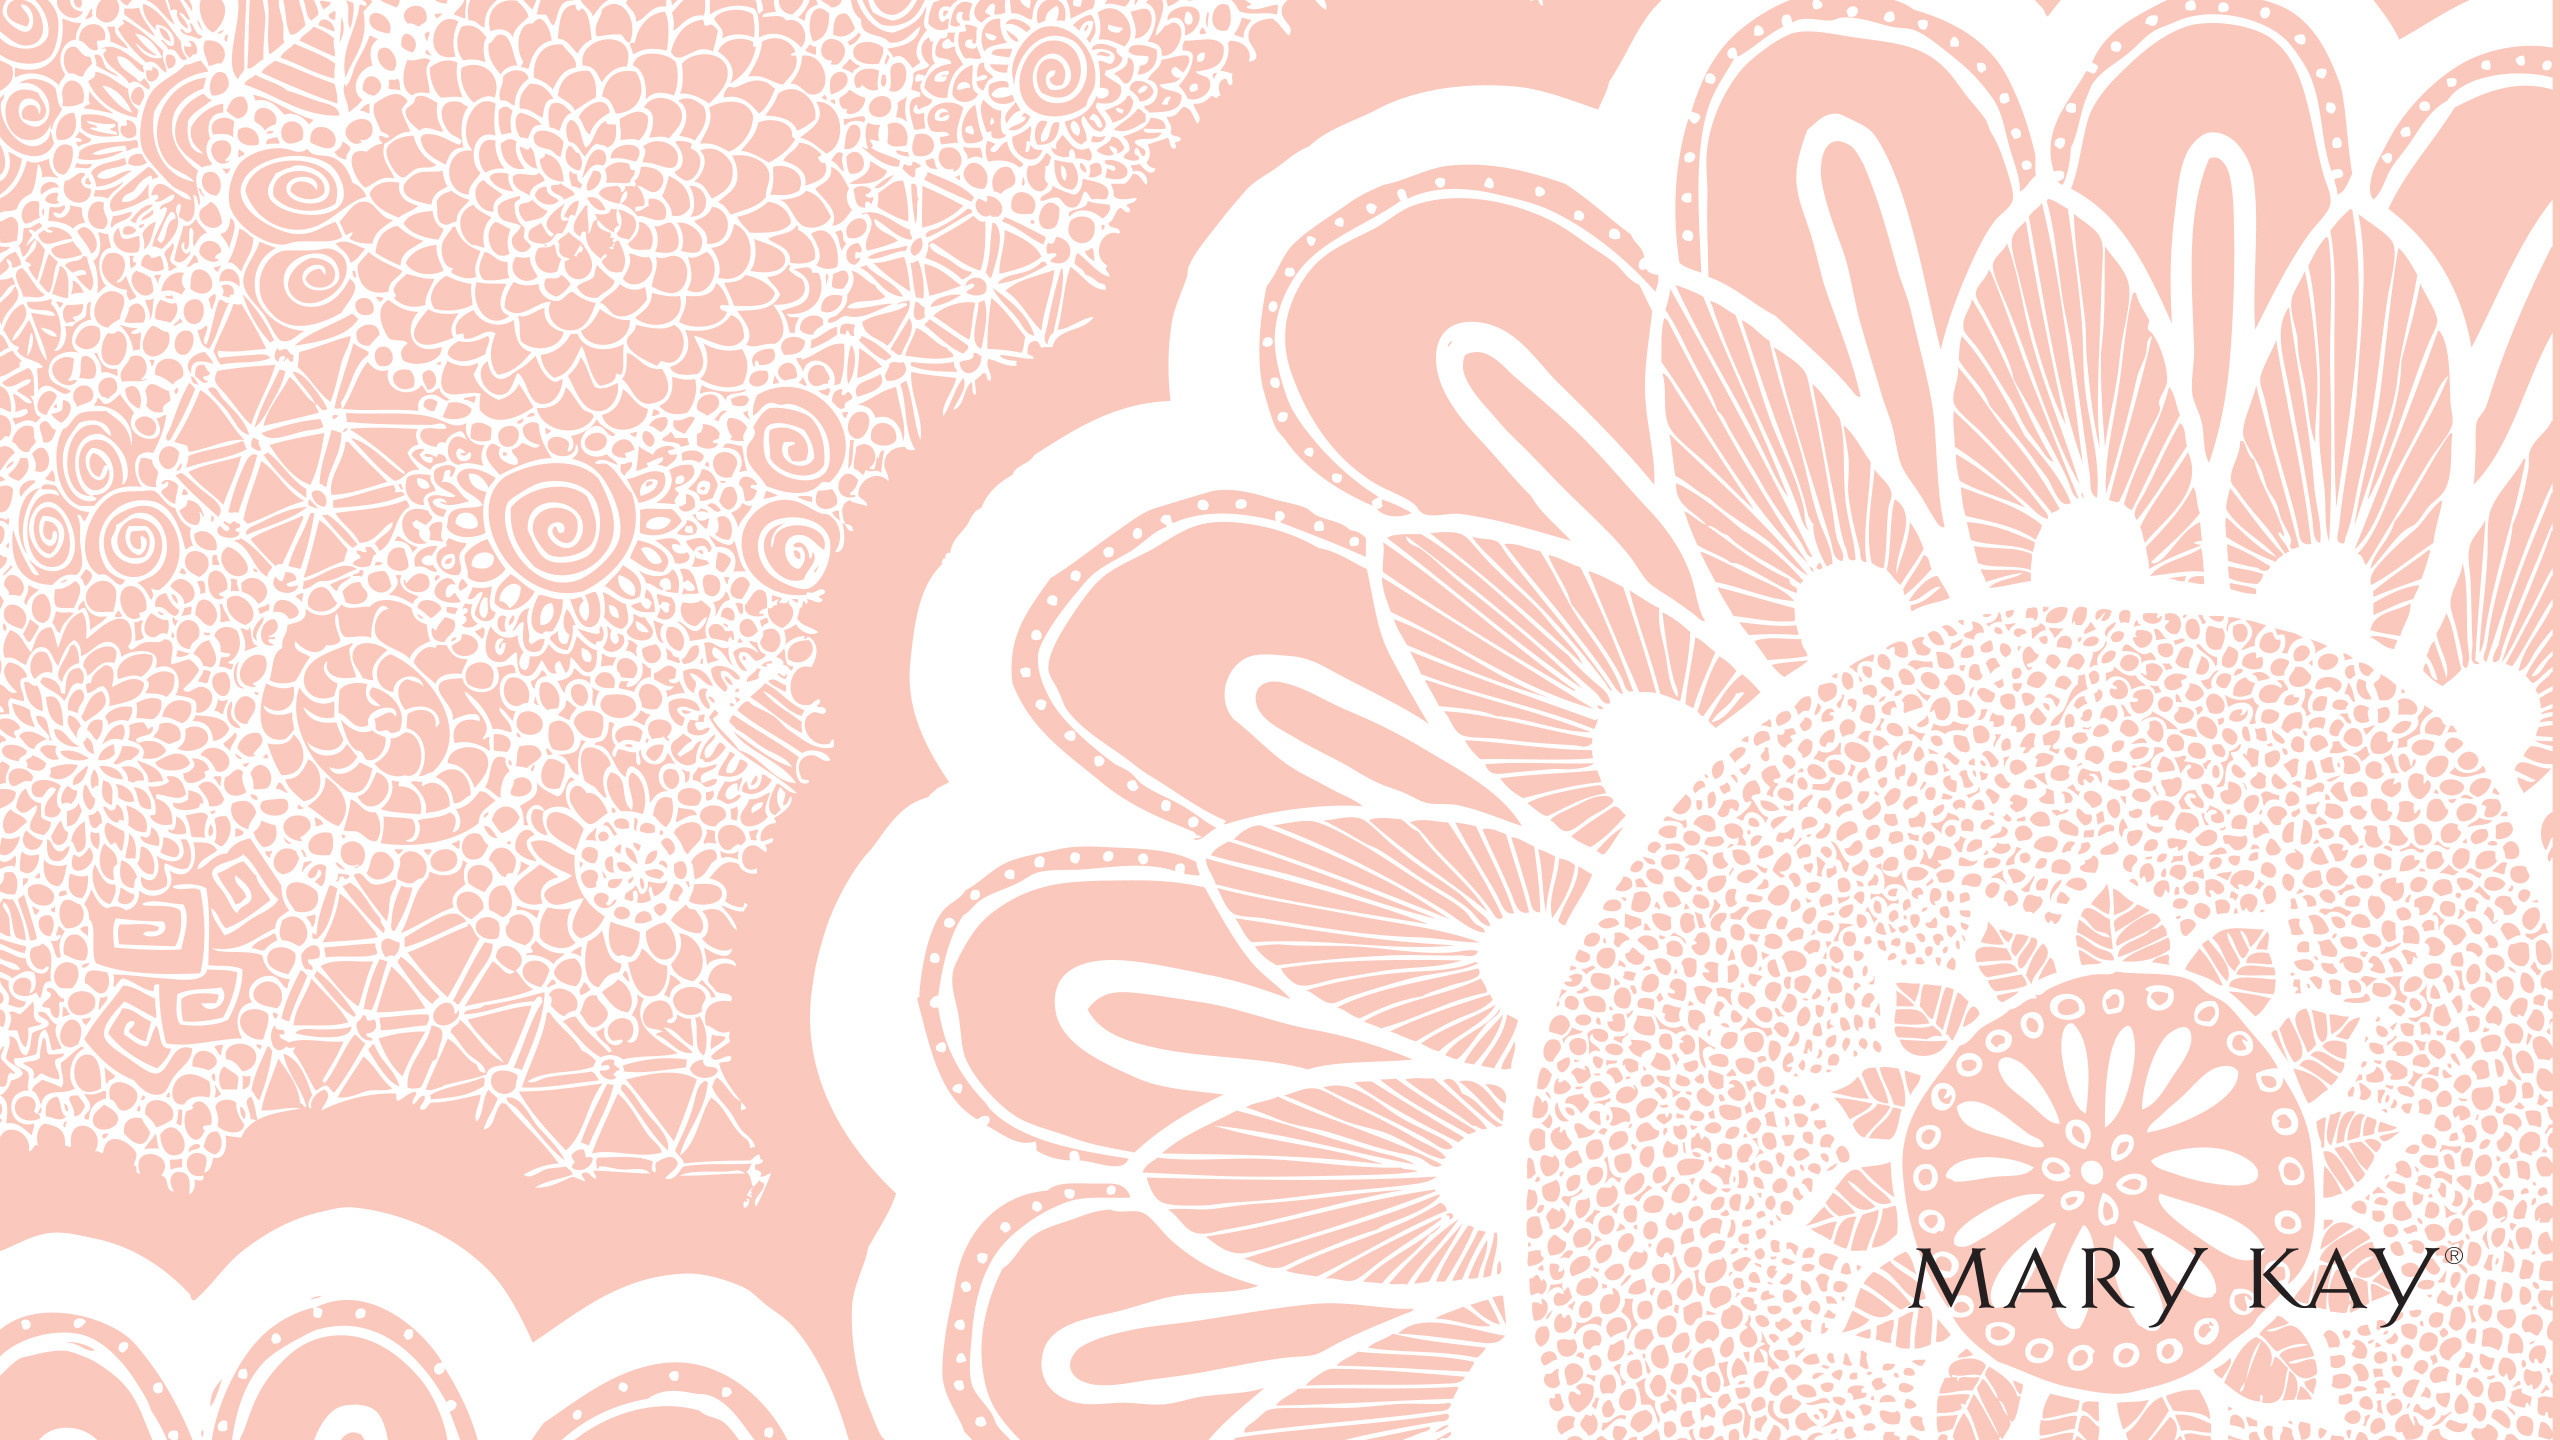 wallpapers mary kay – Buscar con Google